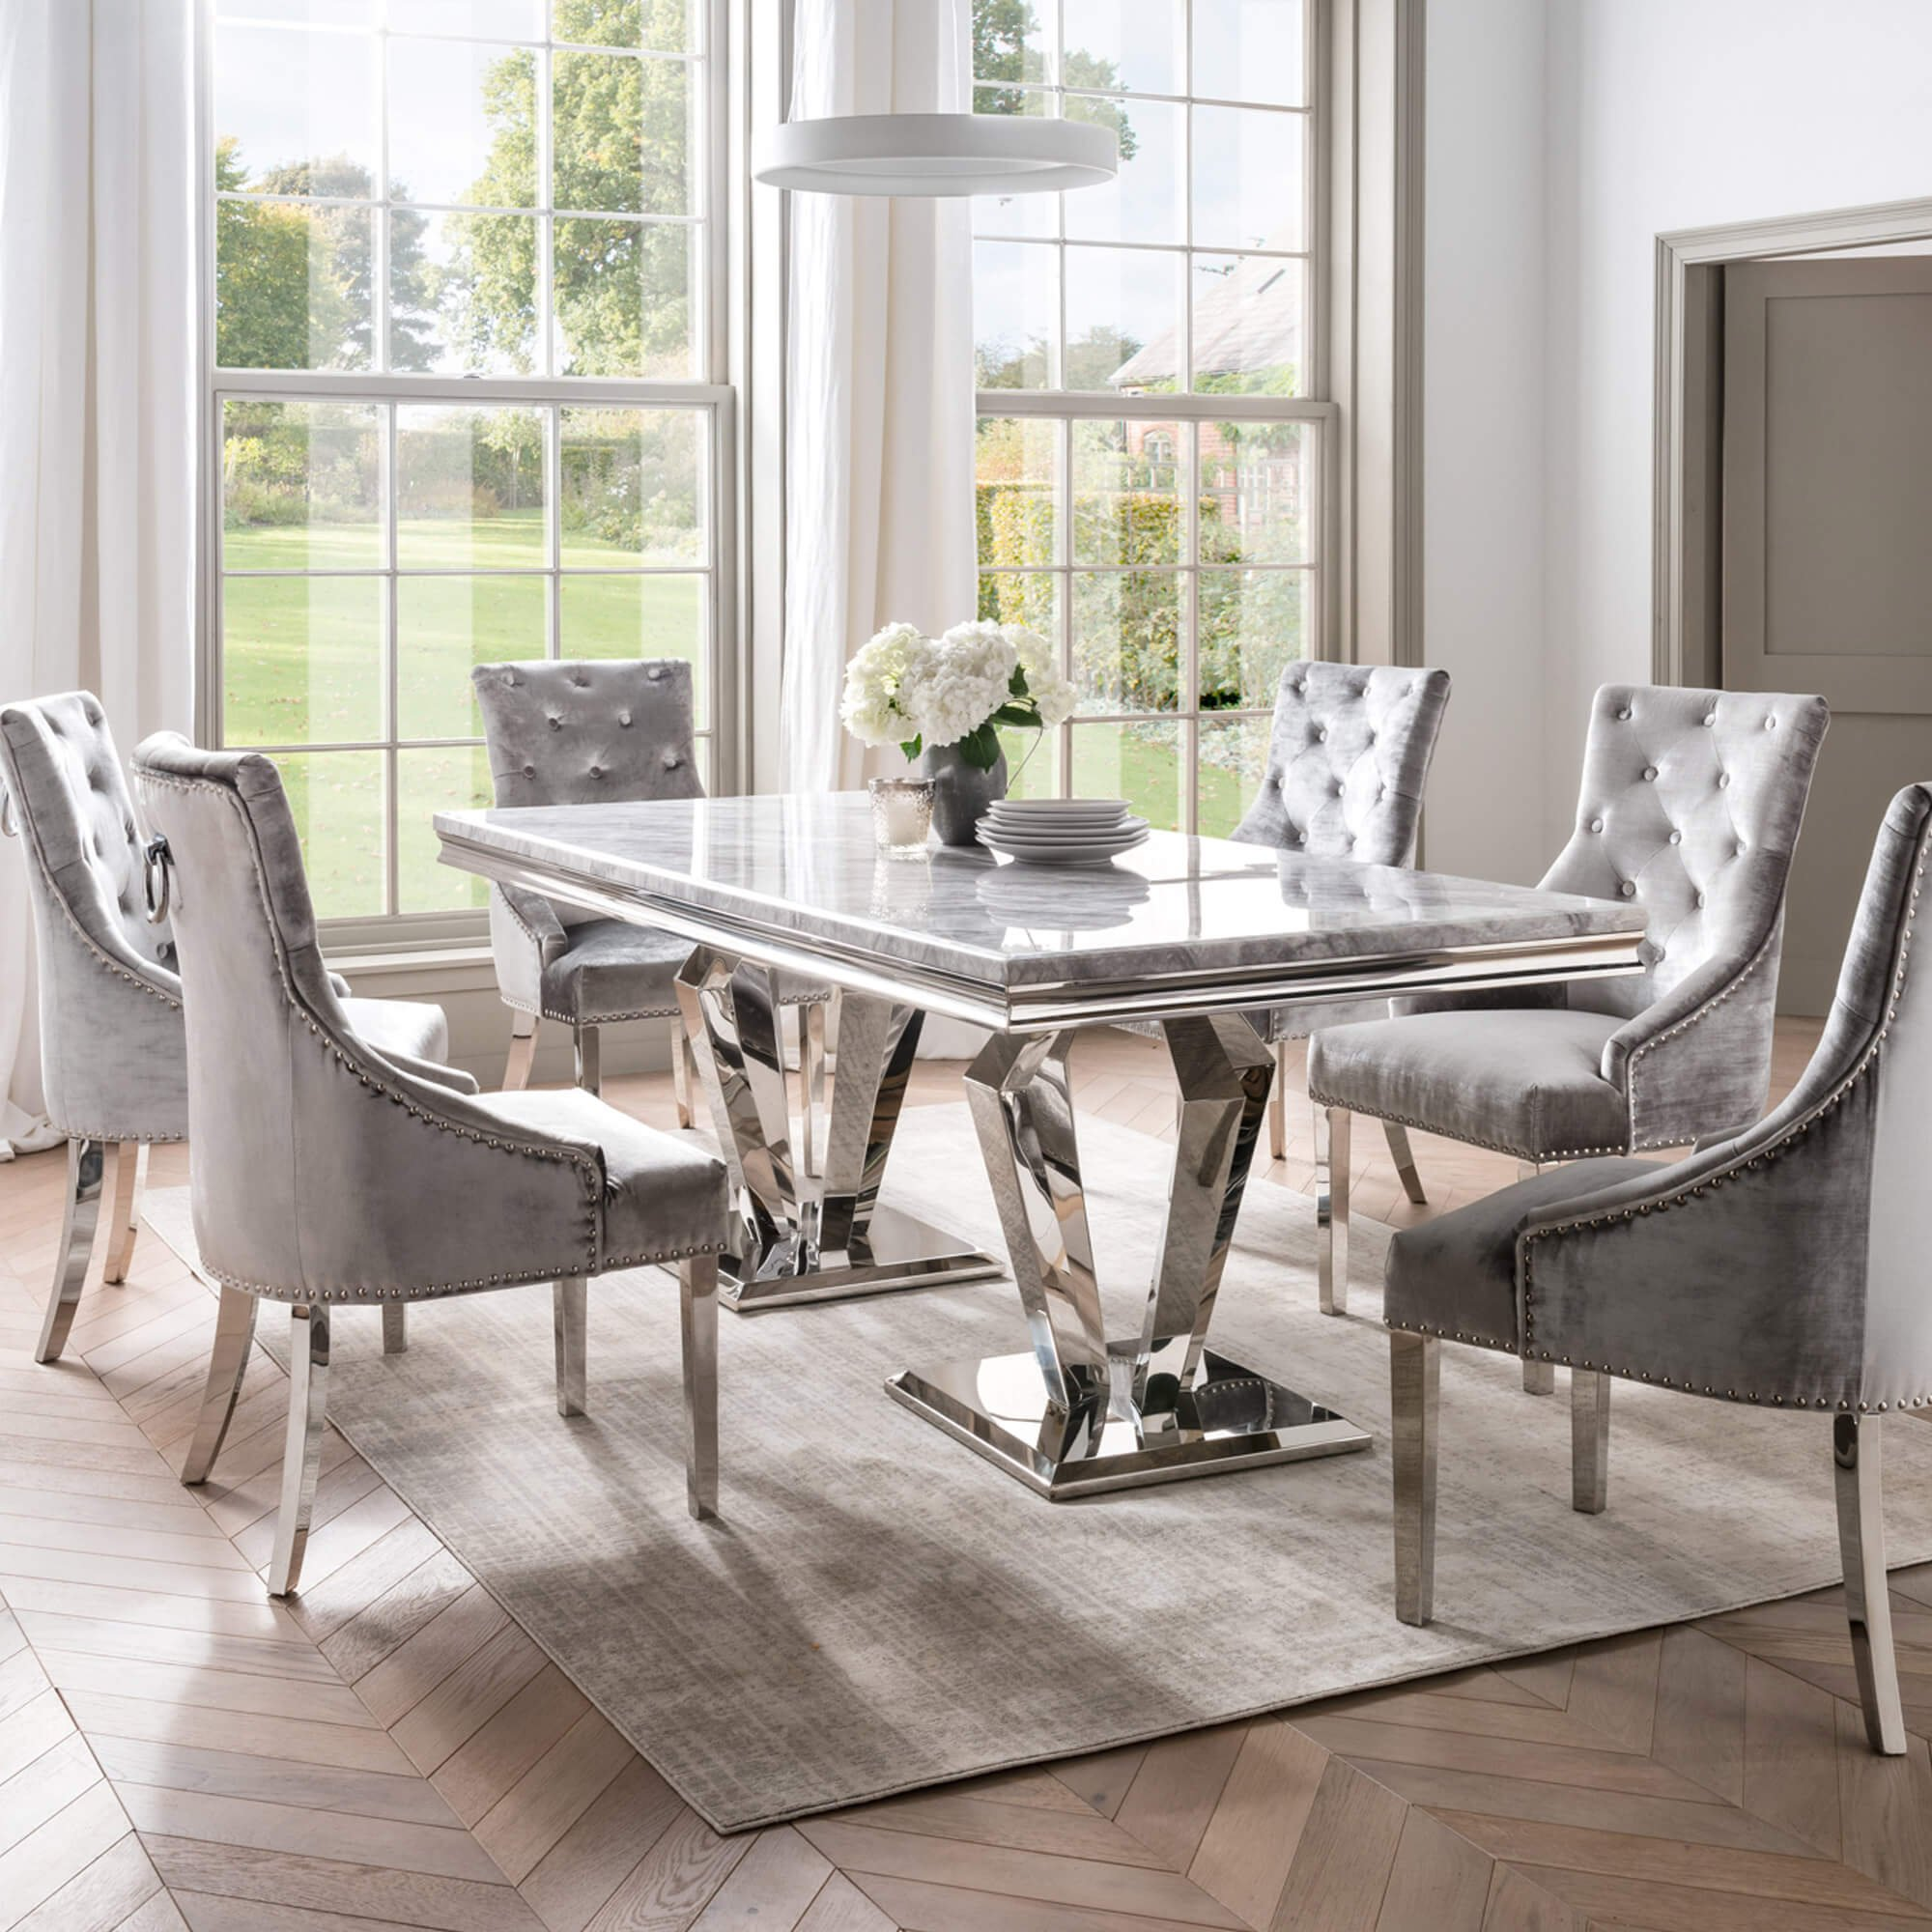 Paradox 180cm Grey Marble Dining Table 6 Parker Grey Dining Chairs